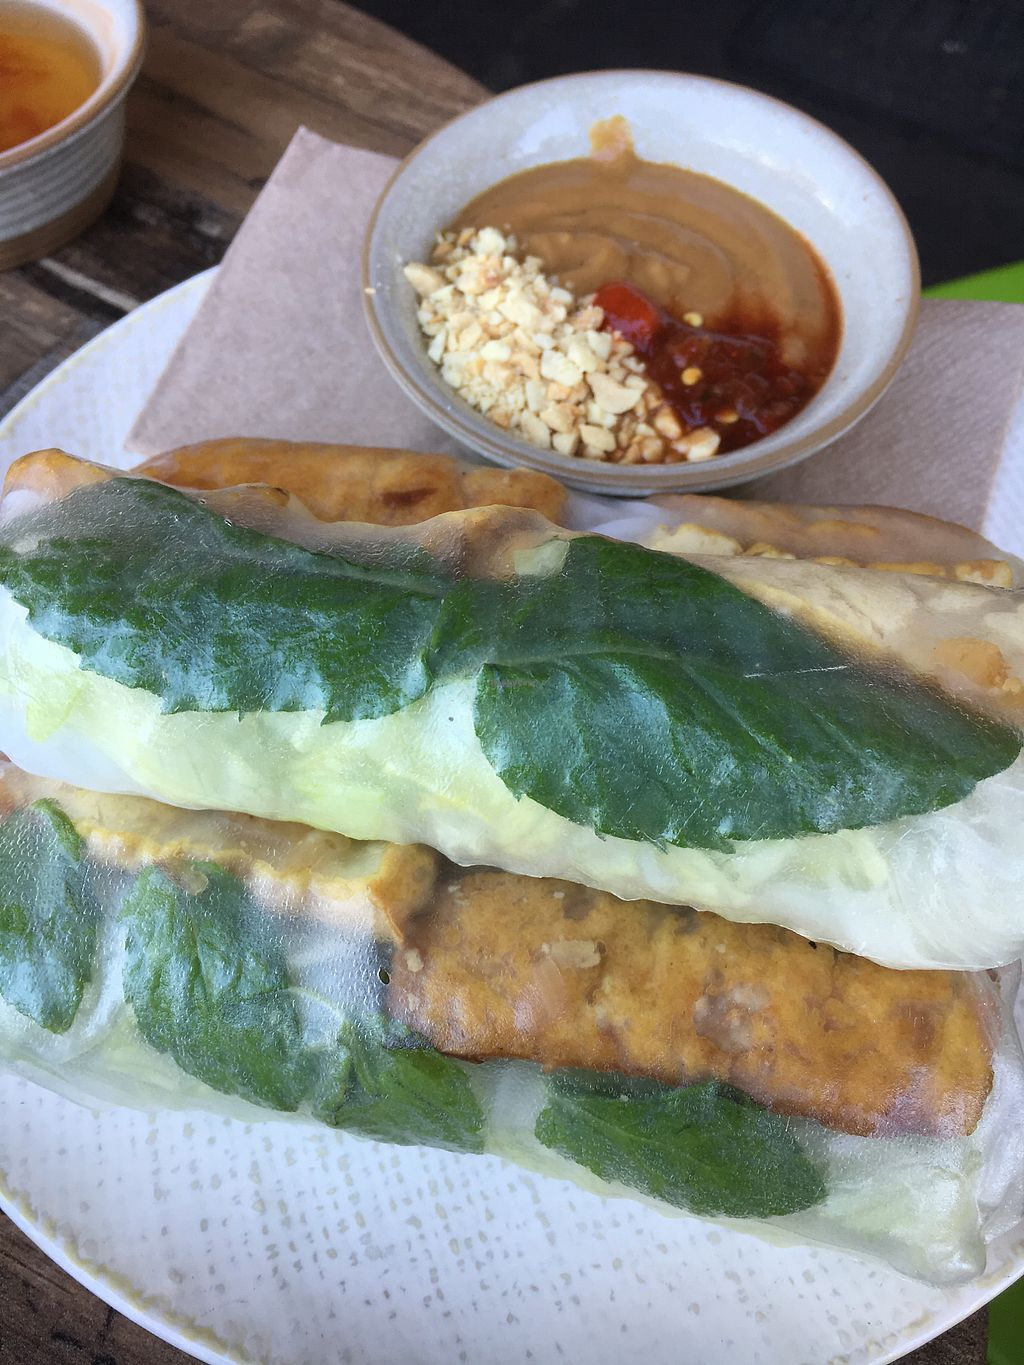 """Photo of Olivia Spring Cafe  by <a href=""""/members/profile/VeganBec"""">VeganBec</a> <br/>Rice Paper Rolls <br/> January 17, 2018  - <a href='/contact/abuse/image/94297/347414'>Report</a>"""